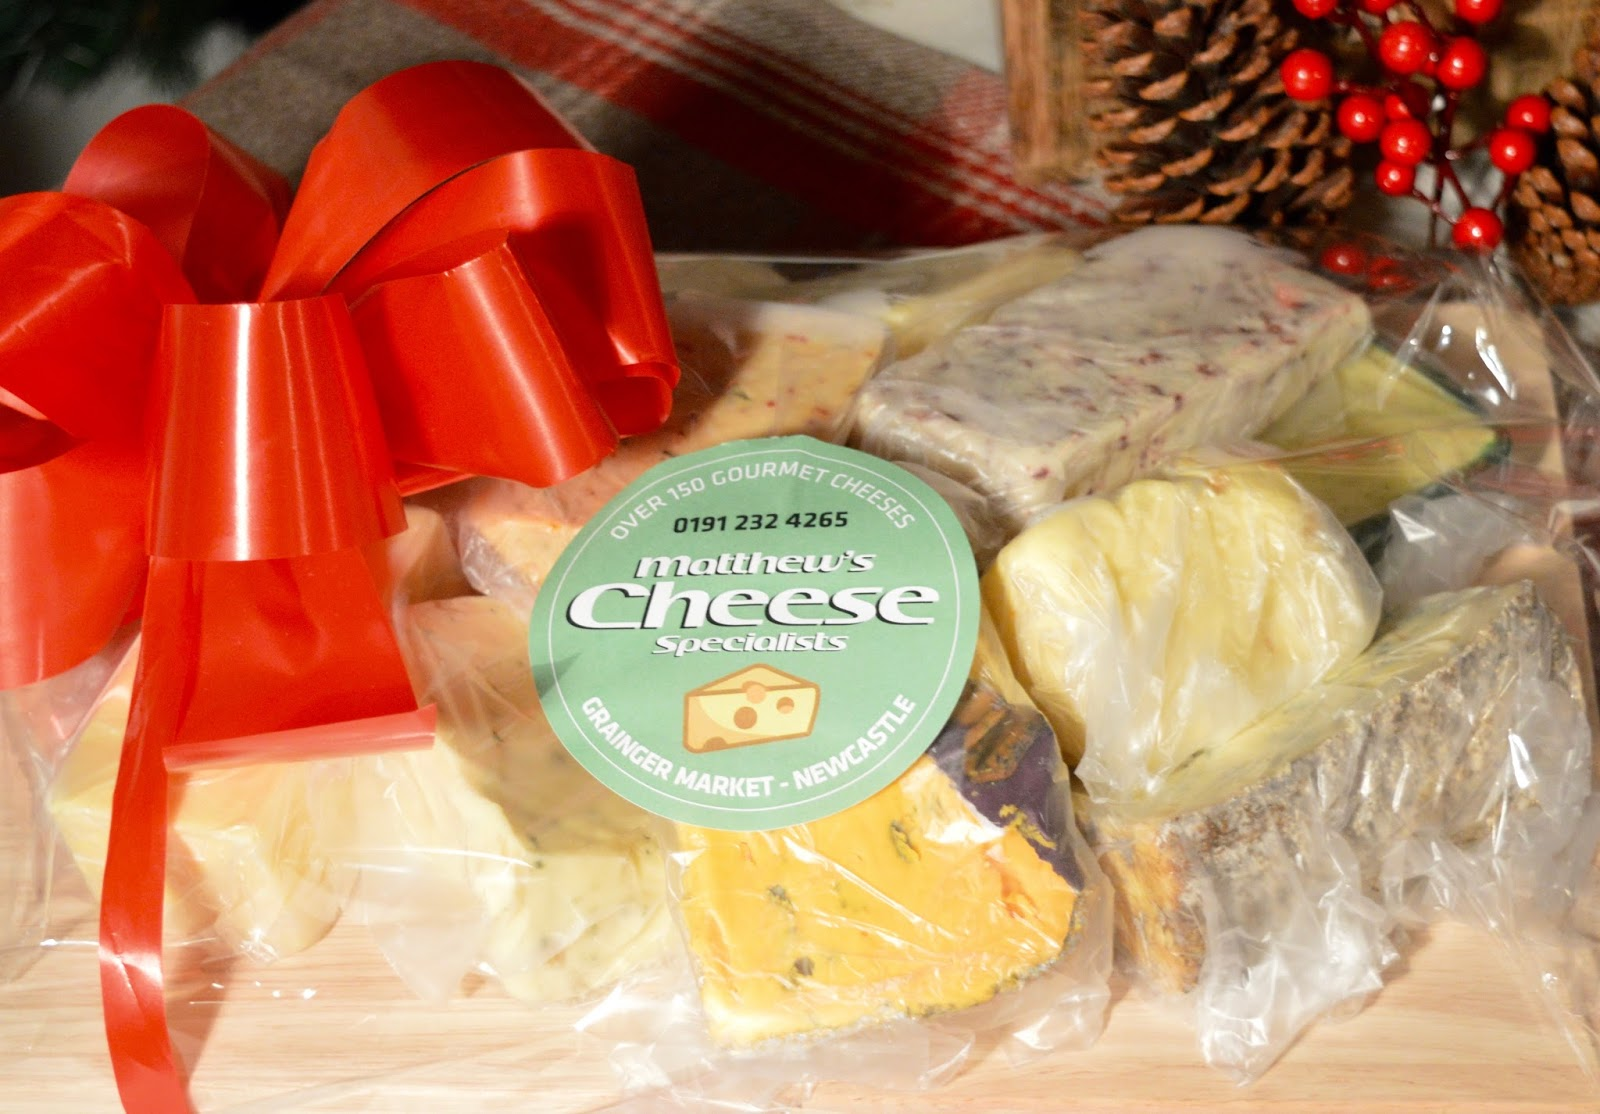 Creating a perfect Cheese Board with Matthew's Cheese Shop | The Grainger Market, Newcastle - cheese board